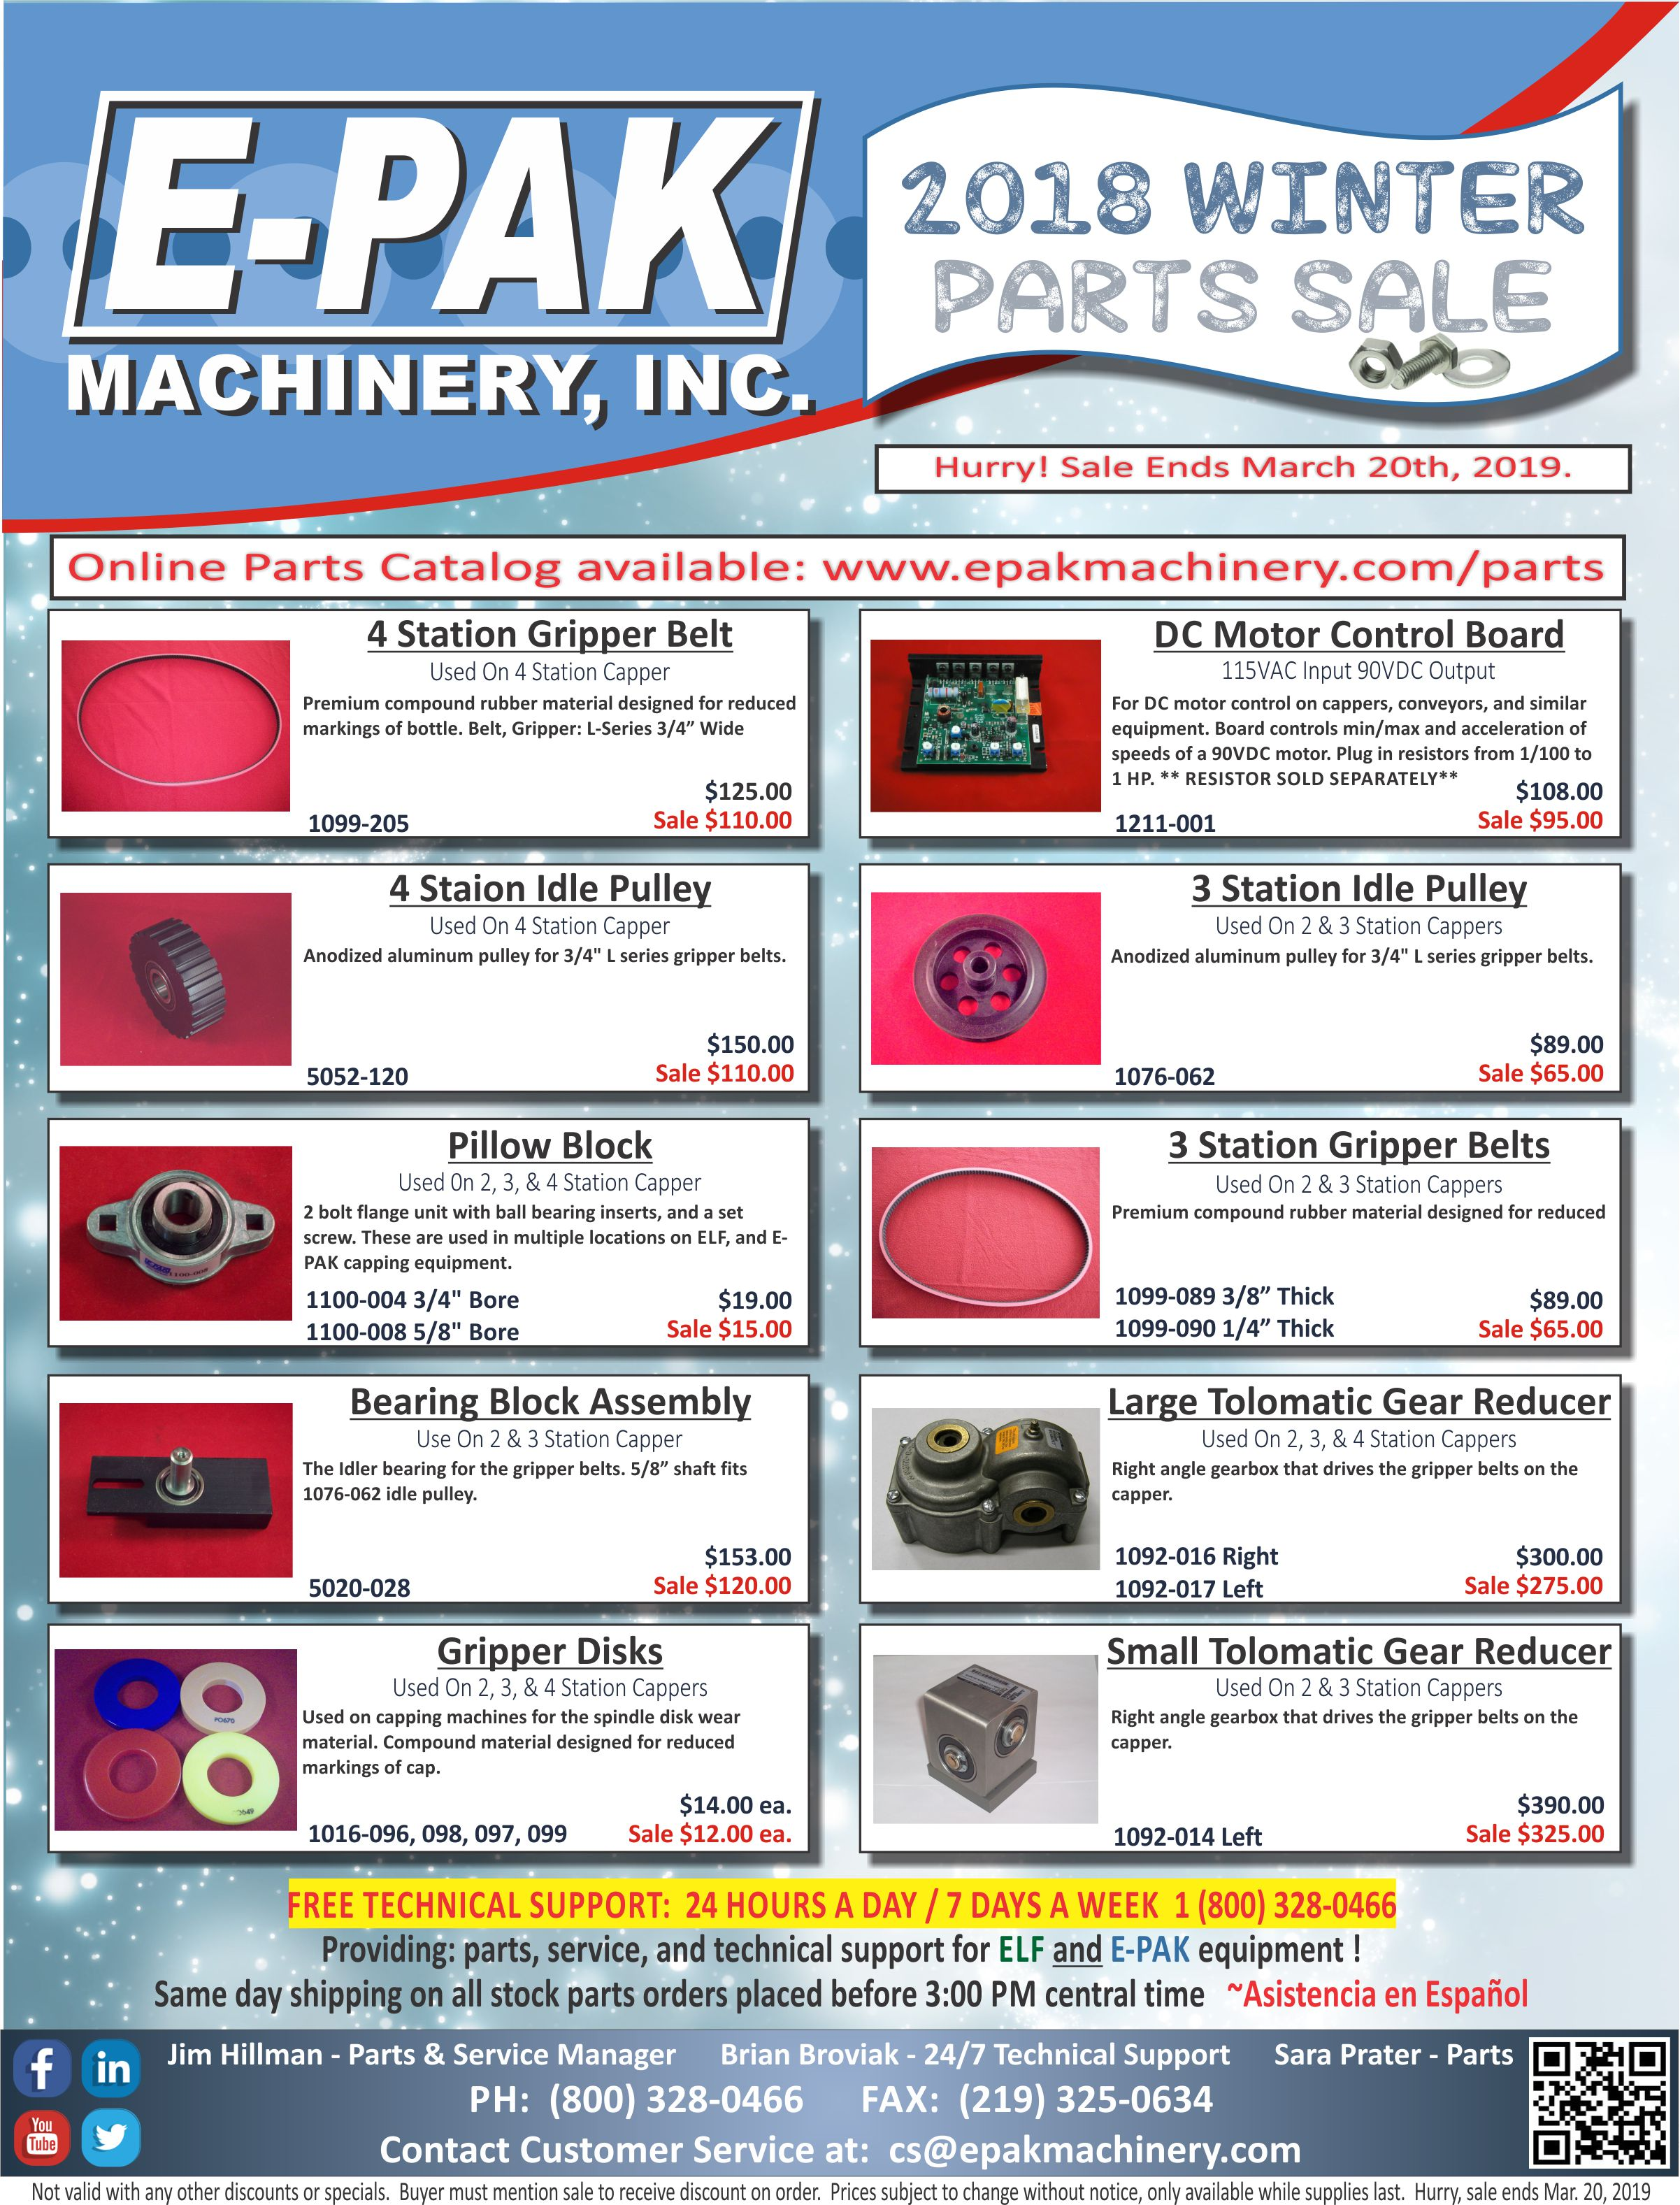 emi-parts-sale-flyer-winter-2018.jpg